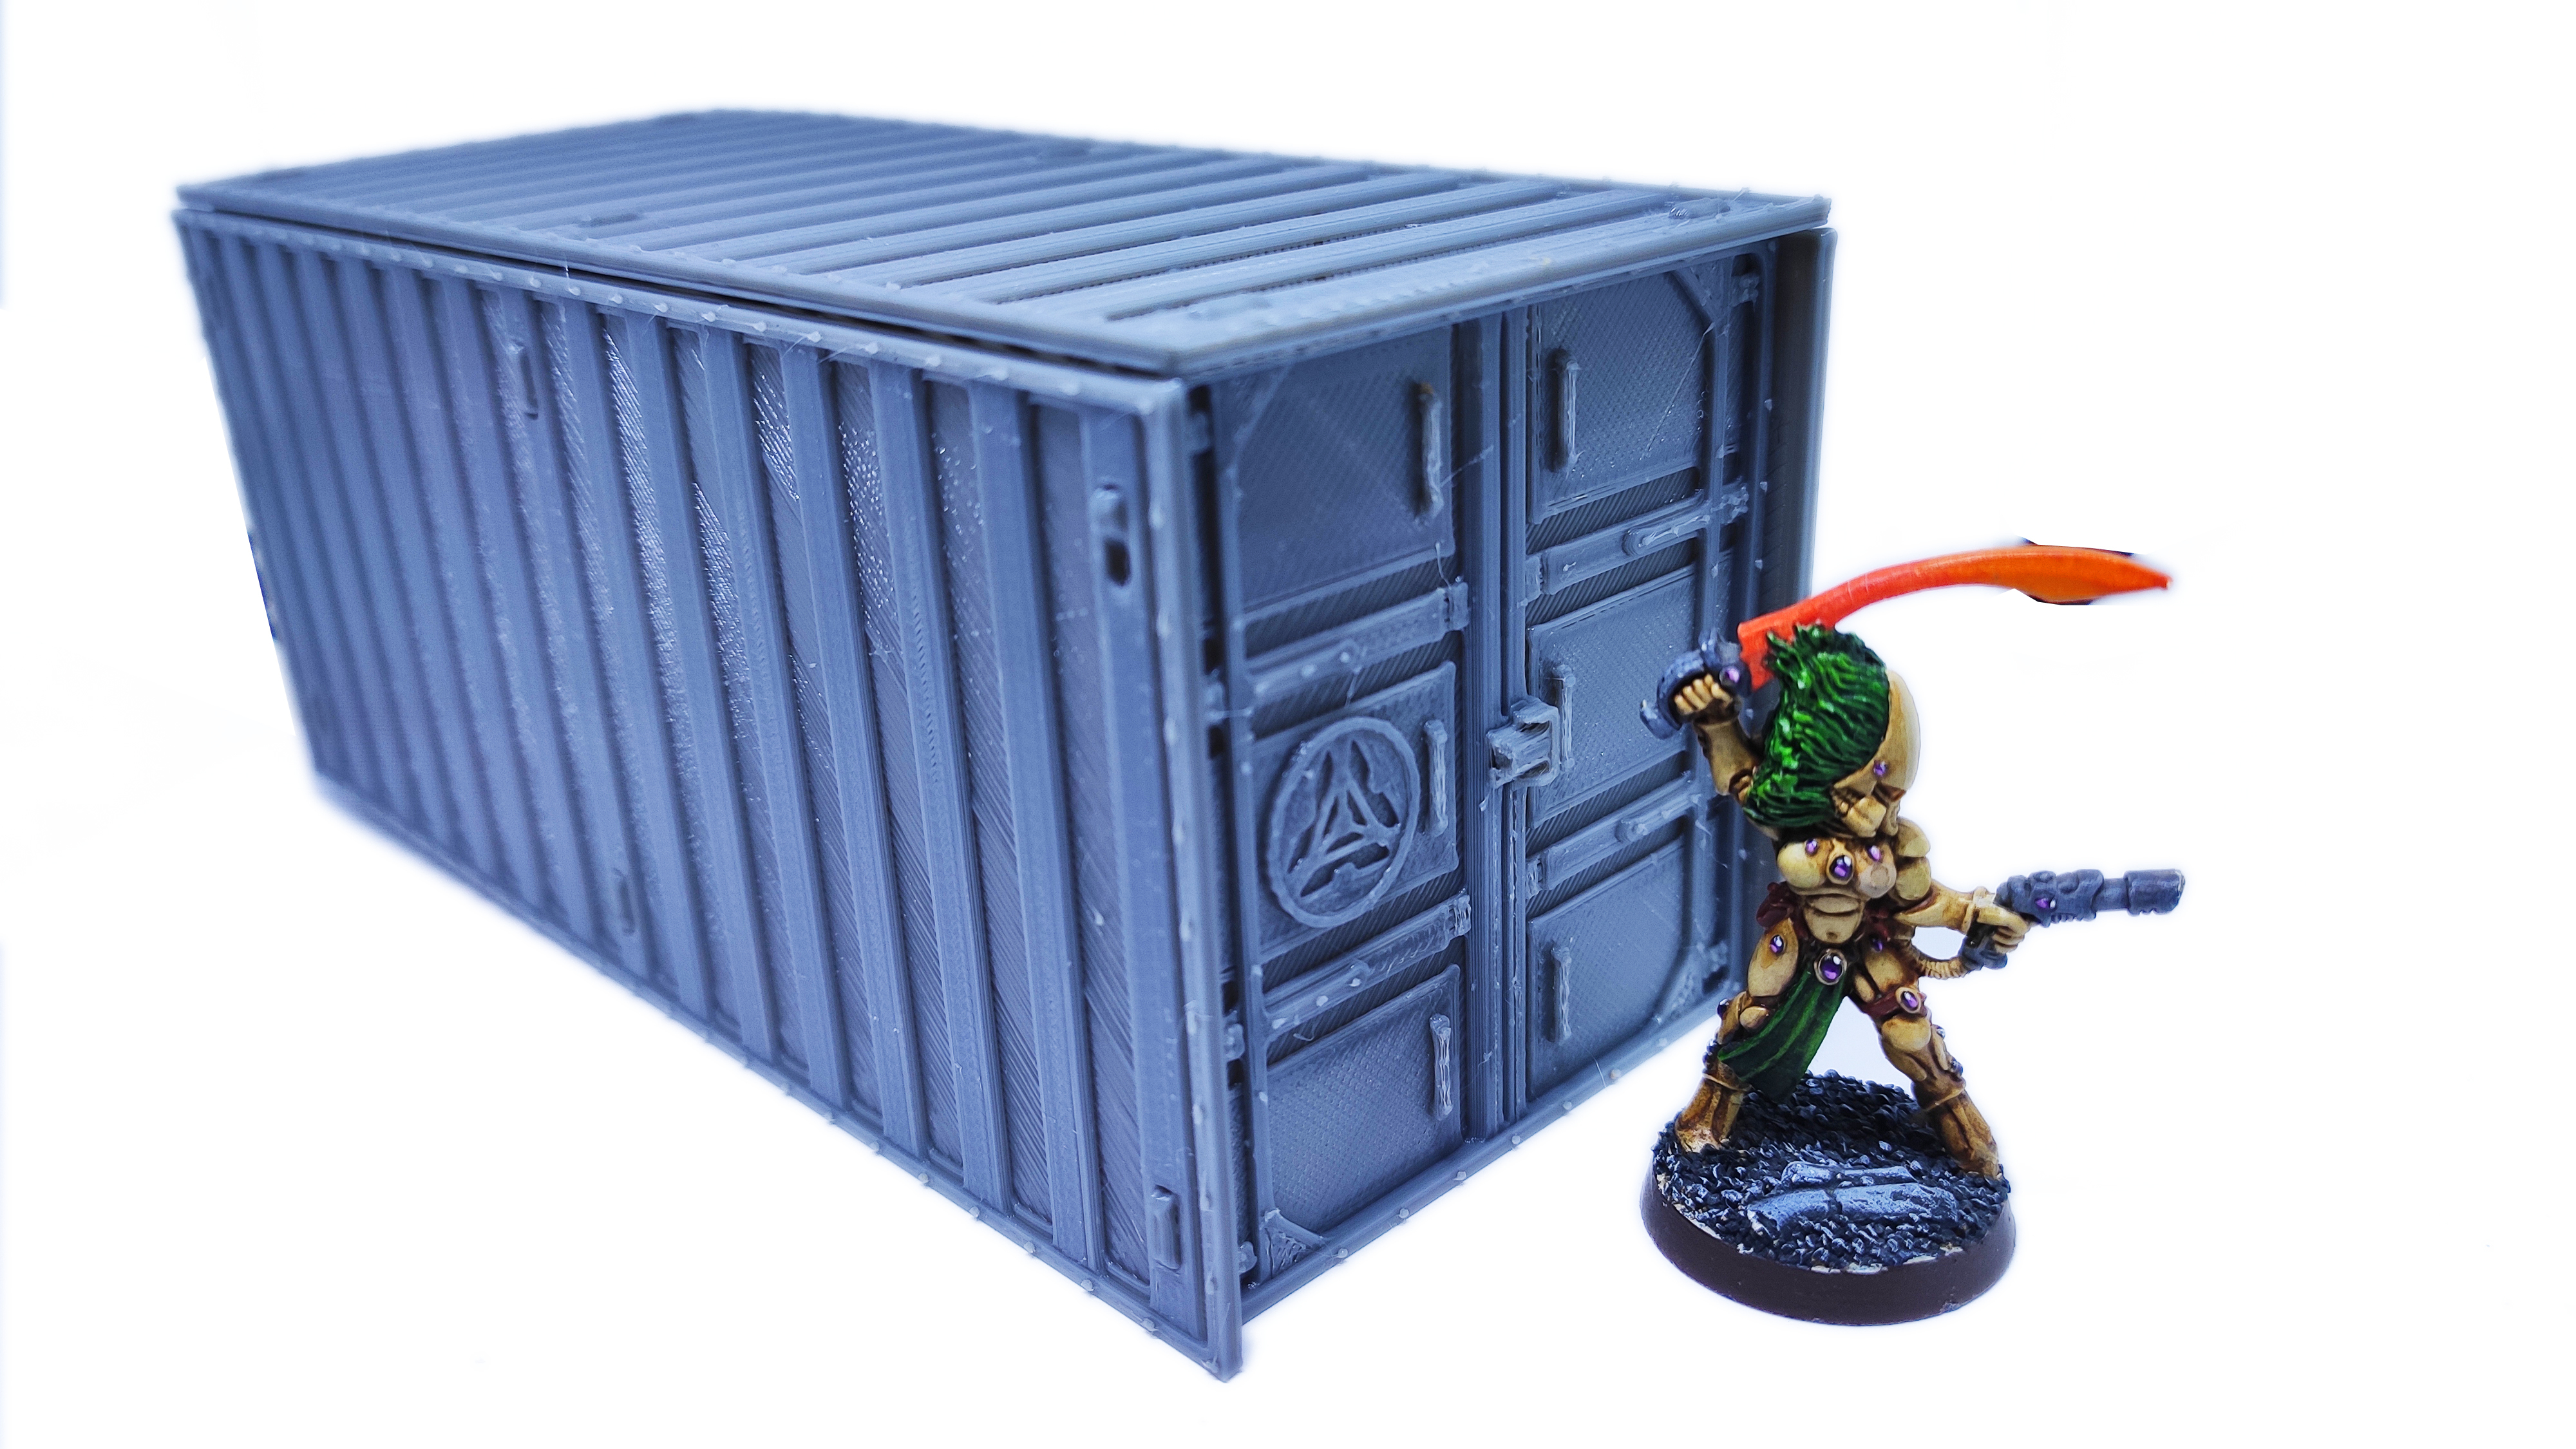 IMG_20200918_073409.jpg Download free STL file Containers for wargame terrain 6.25x6.25x15cm • Template to 3D print, Alario